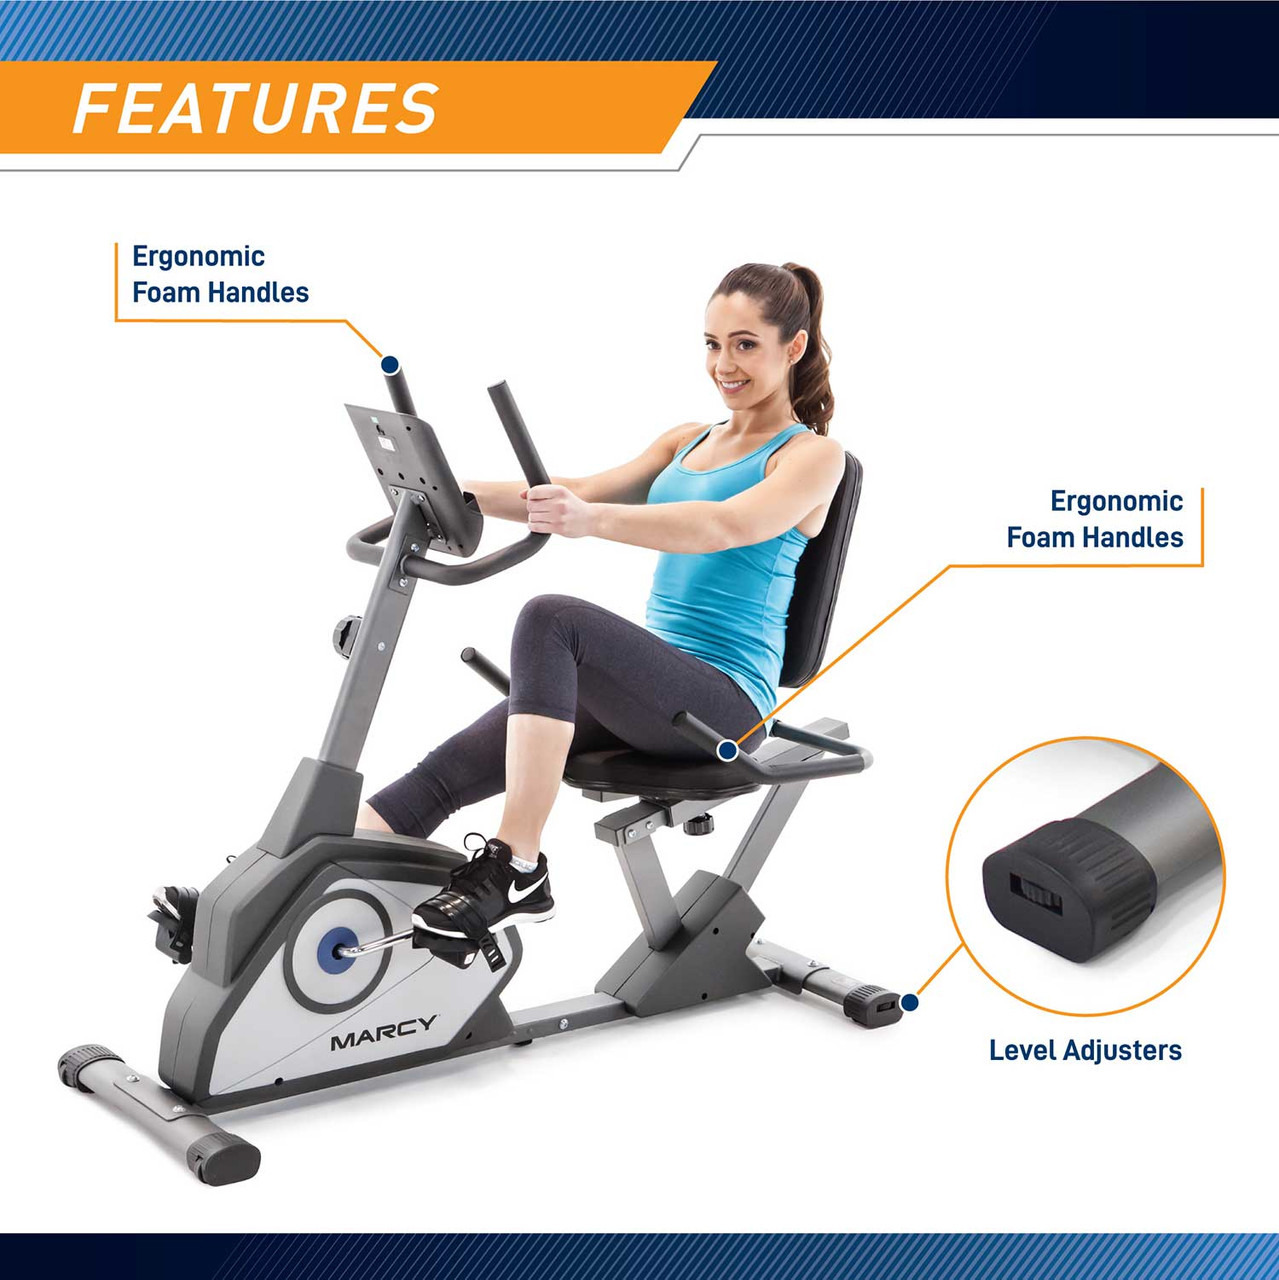 The Recumbent Bike NS-40502R by Marcy has ergonomic handles for comfortable grip